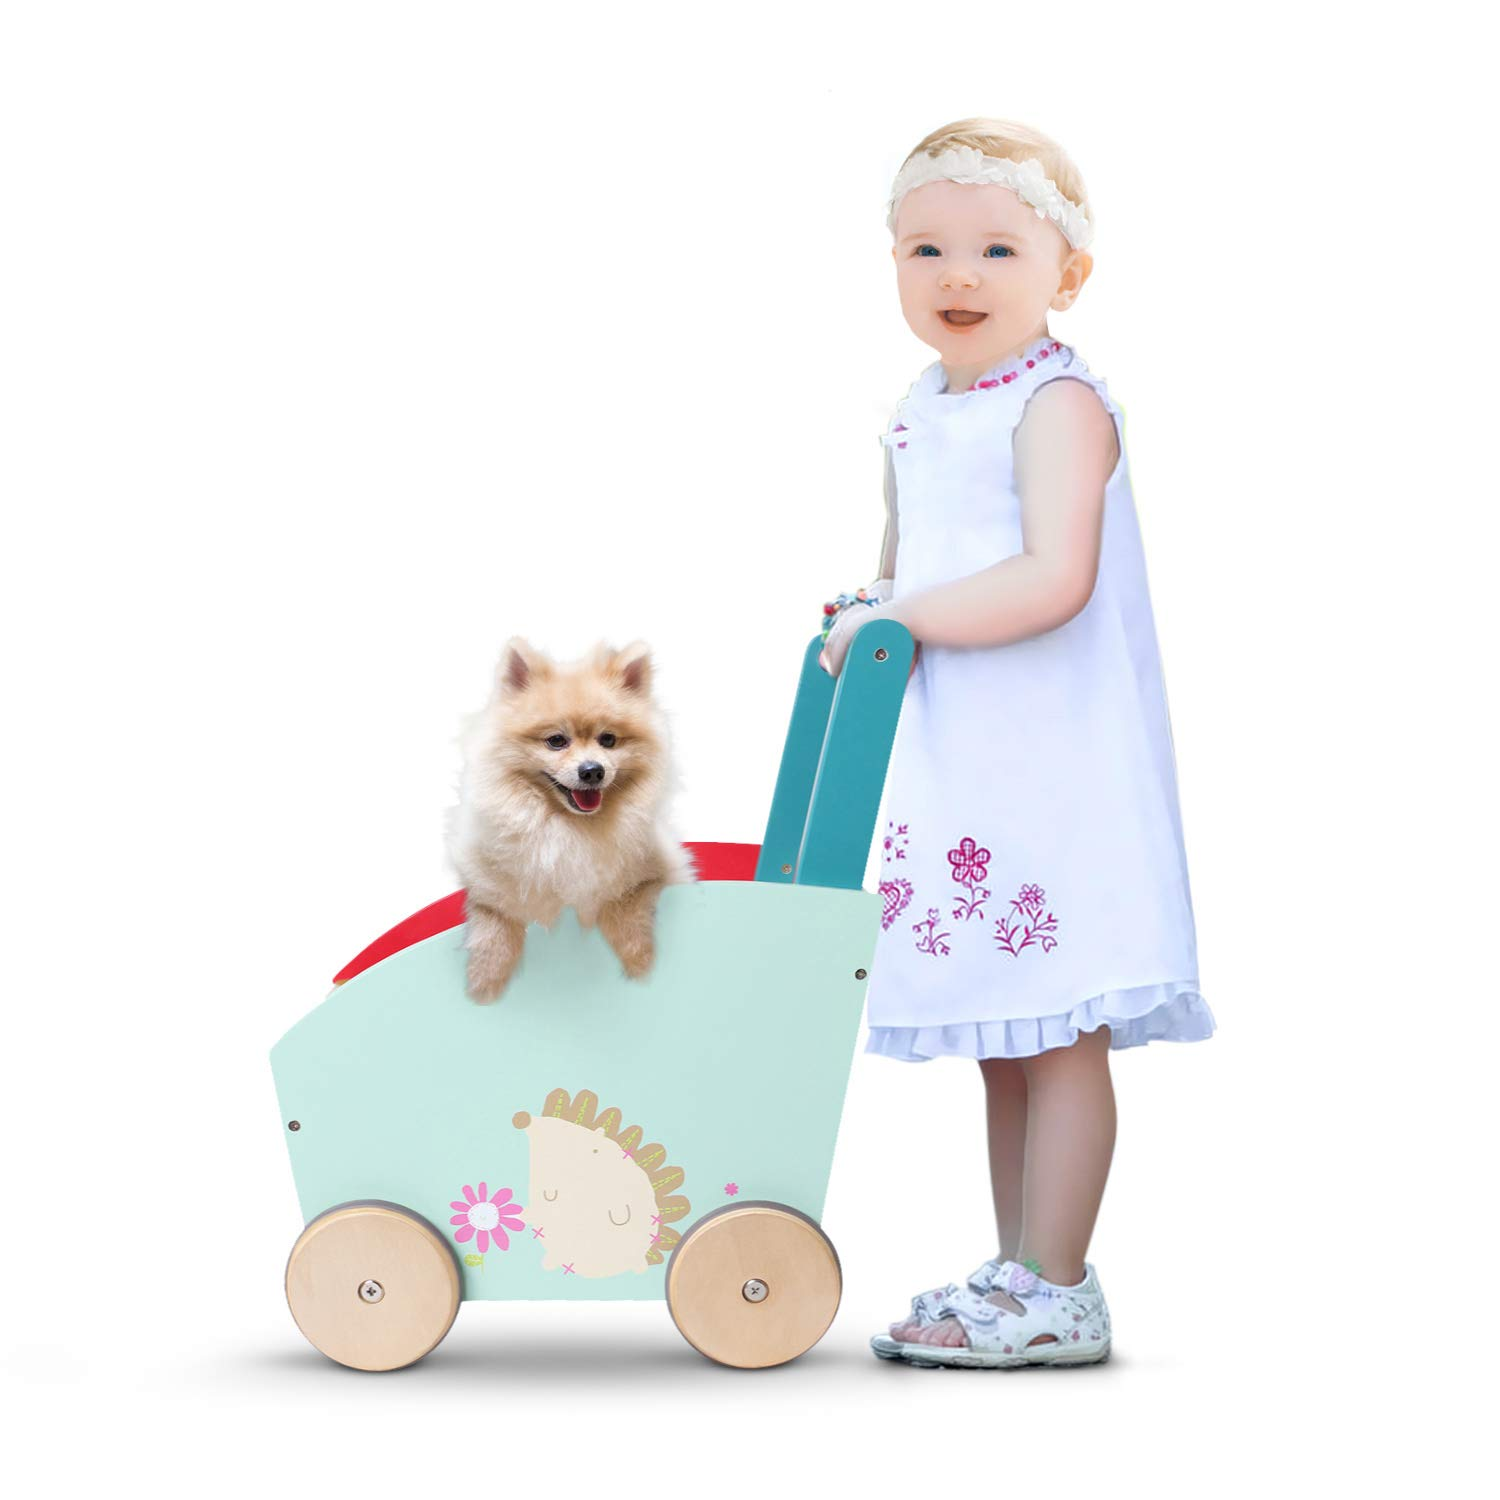 labebe - Baby Walker, Stroller Wagon, Kid Green Push Toy for 1 Year Old, 2 Year Old Red Shopping Cart/Yellow Mini Wood Storage/Early/Infant/Doll/Balance/Girl Boy First/Learning/Sit-to-Stand/Activity